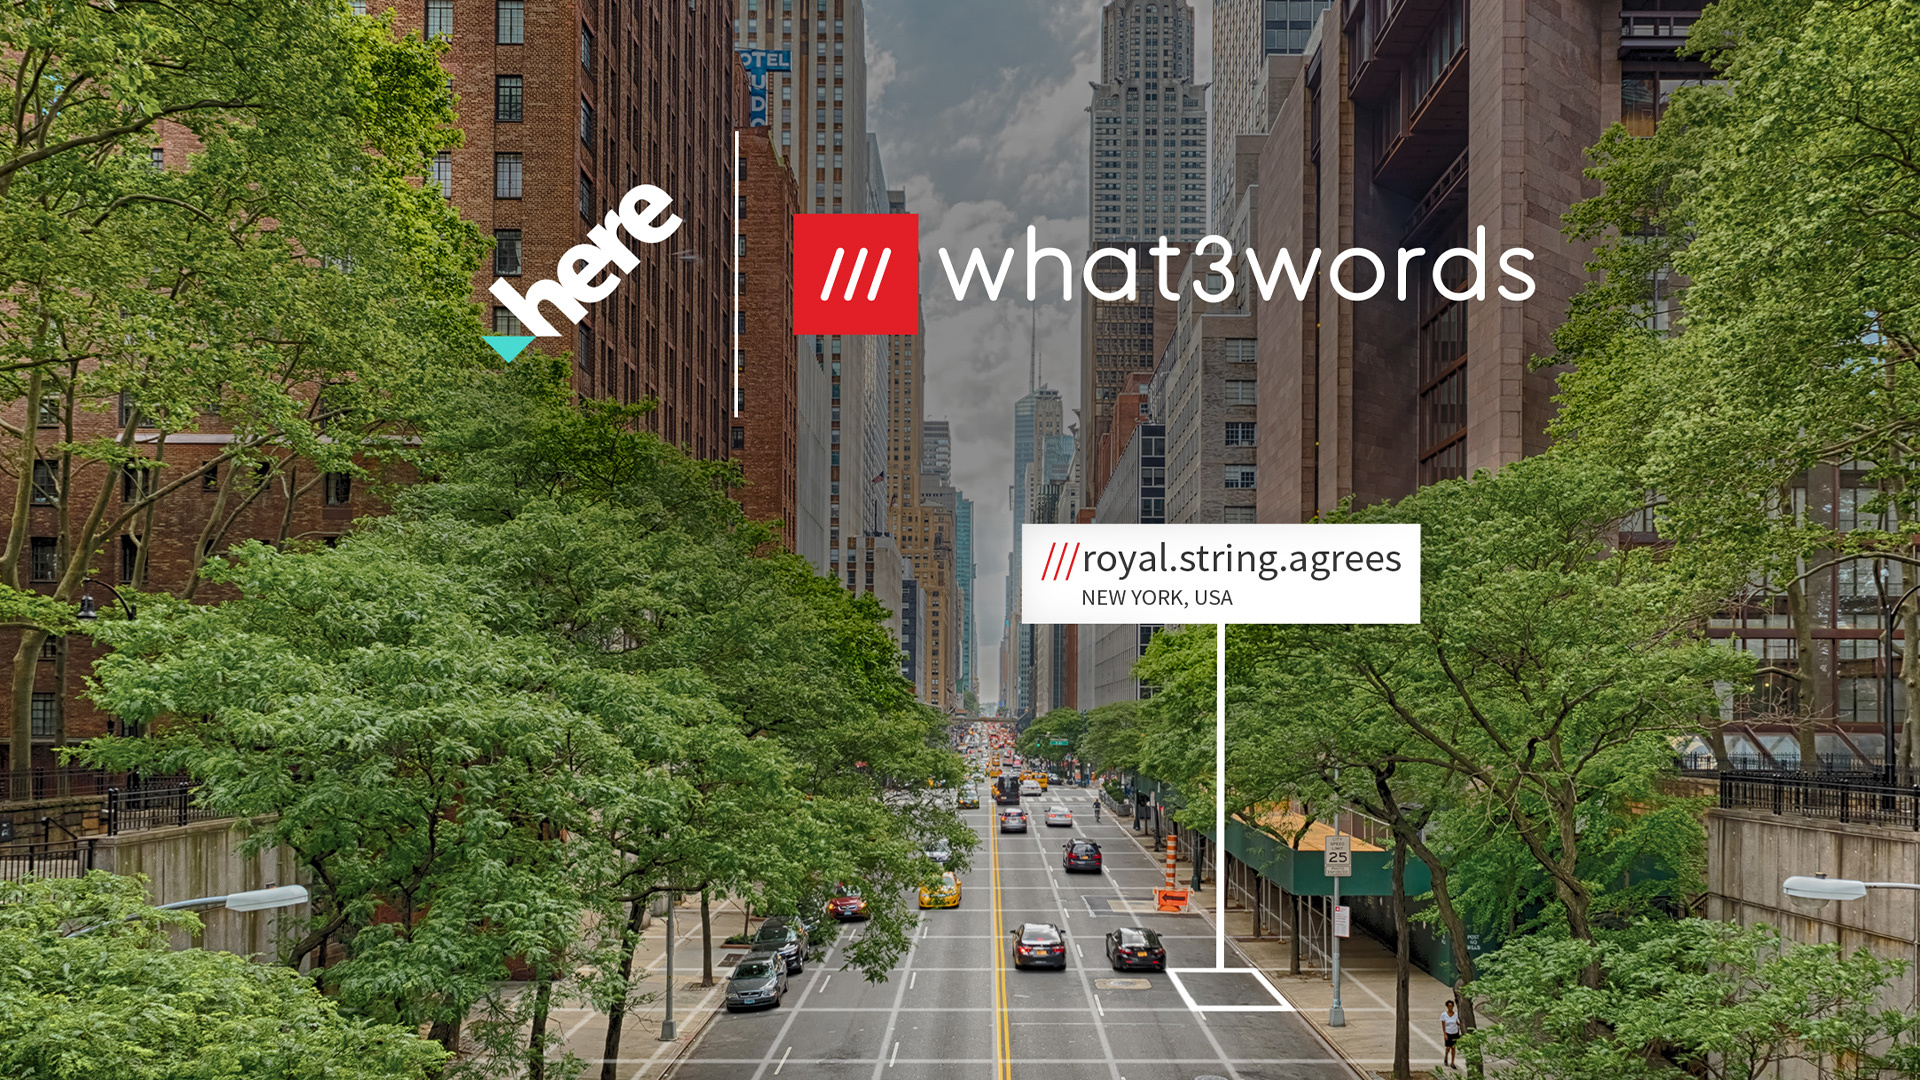 what3words address on busy New York street